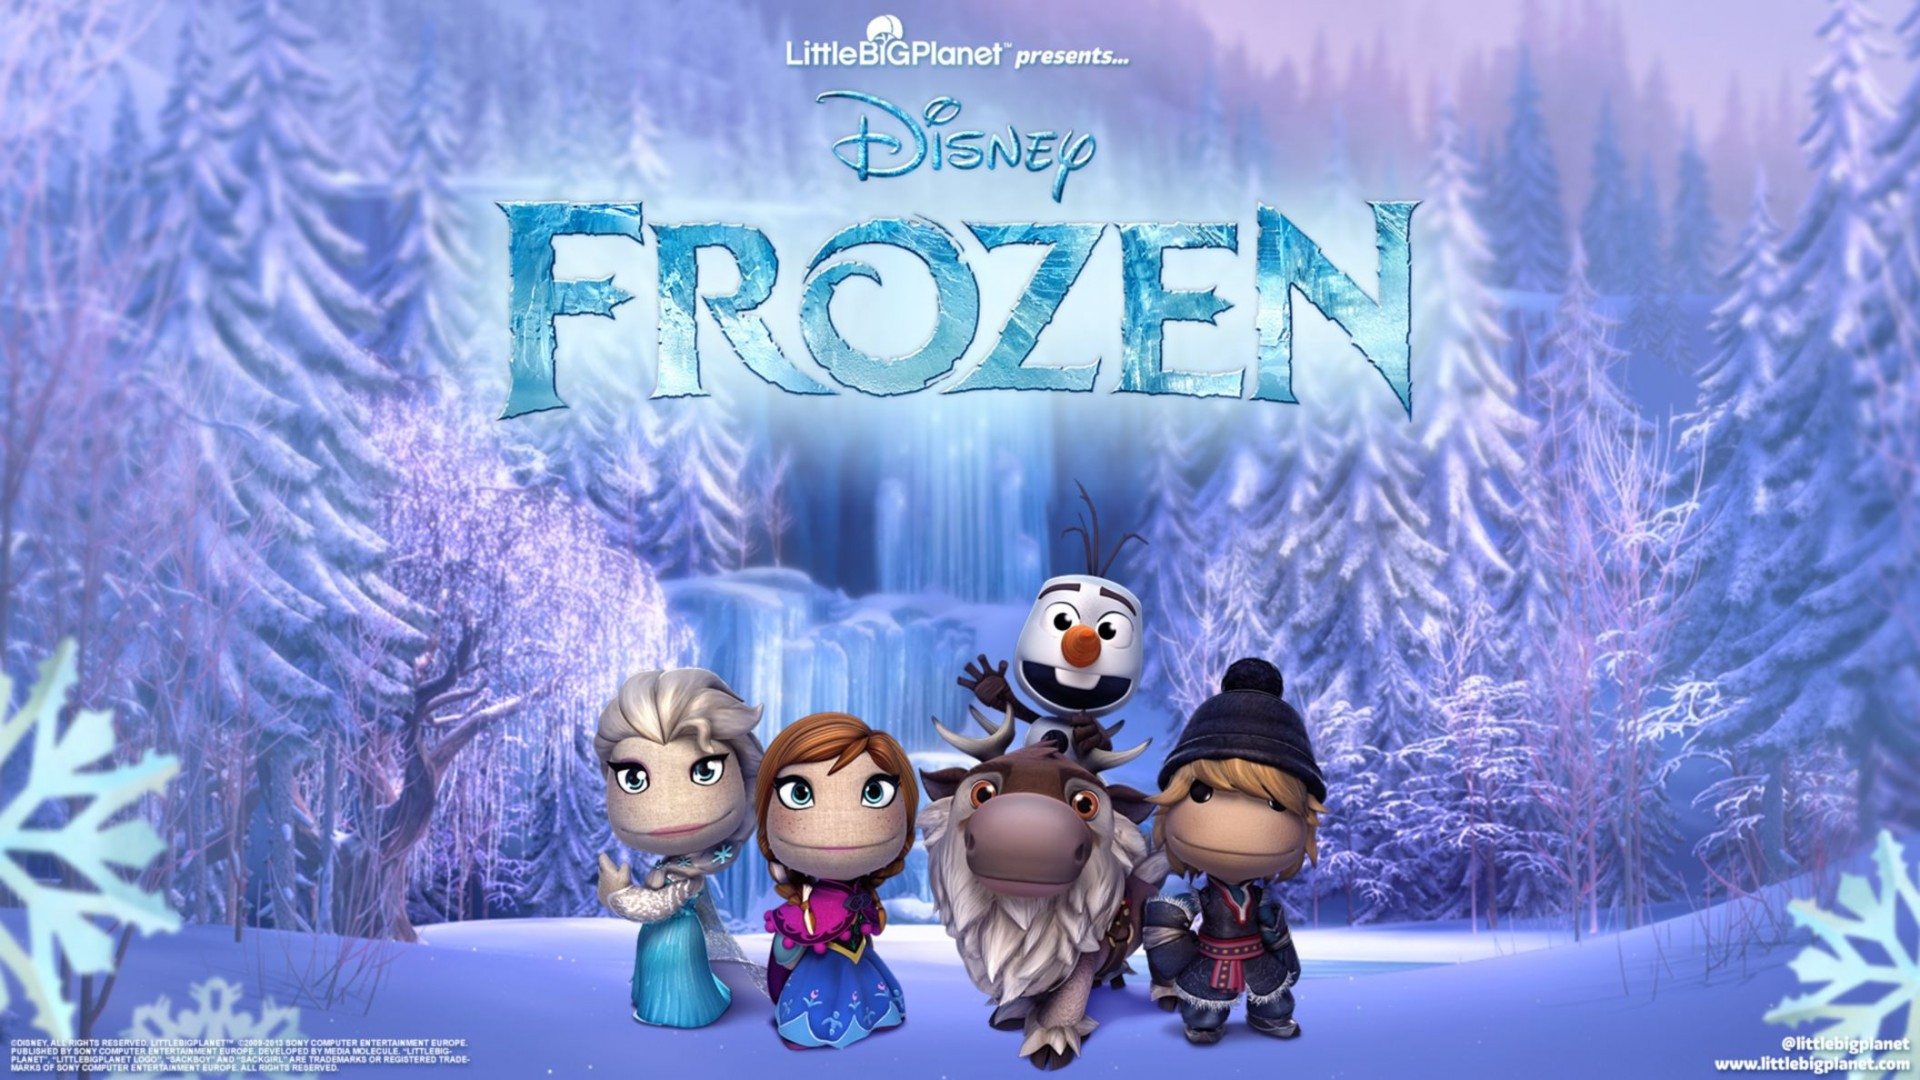 Littlebigplanet 3frozen HD Wallpaper